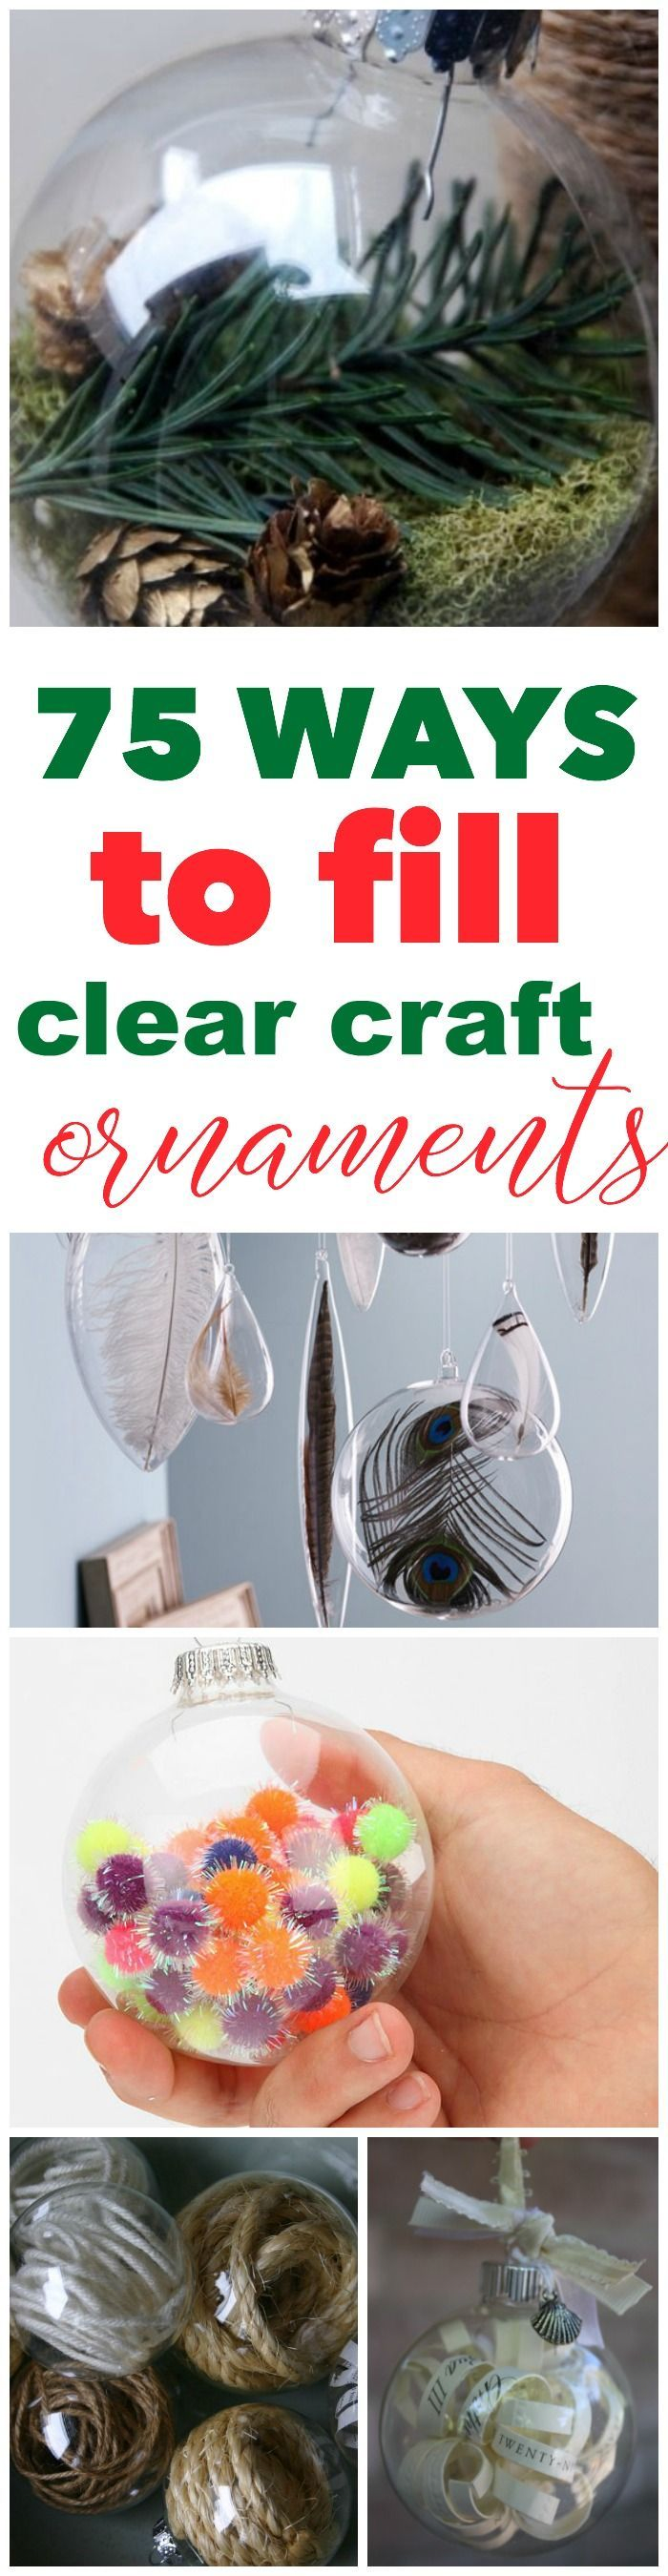 101 handmade christmas ornament ideas - Nothing Says I Love You Like Homemade Christmas Ornaments Here Is 75 Ways To Fill